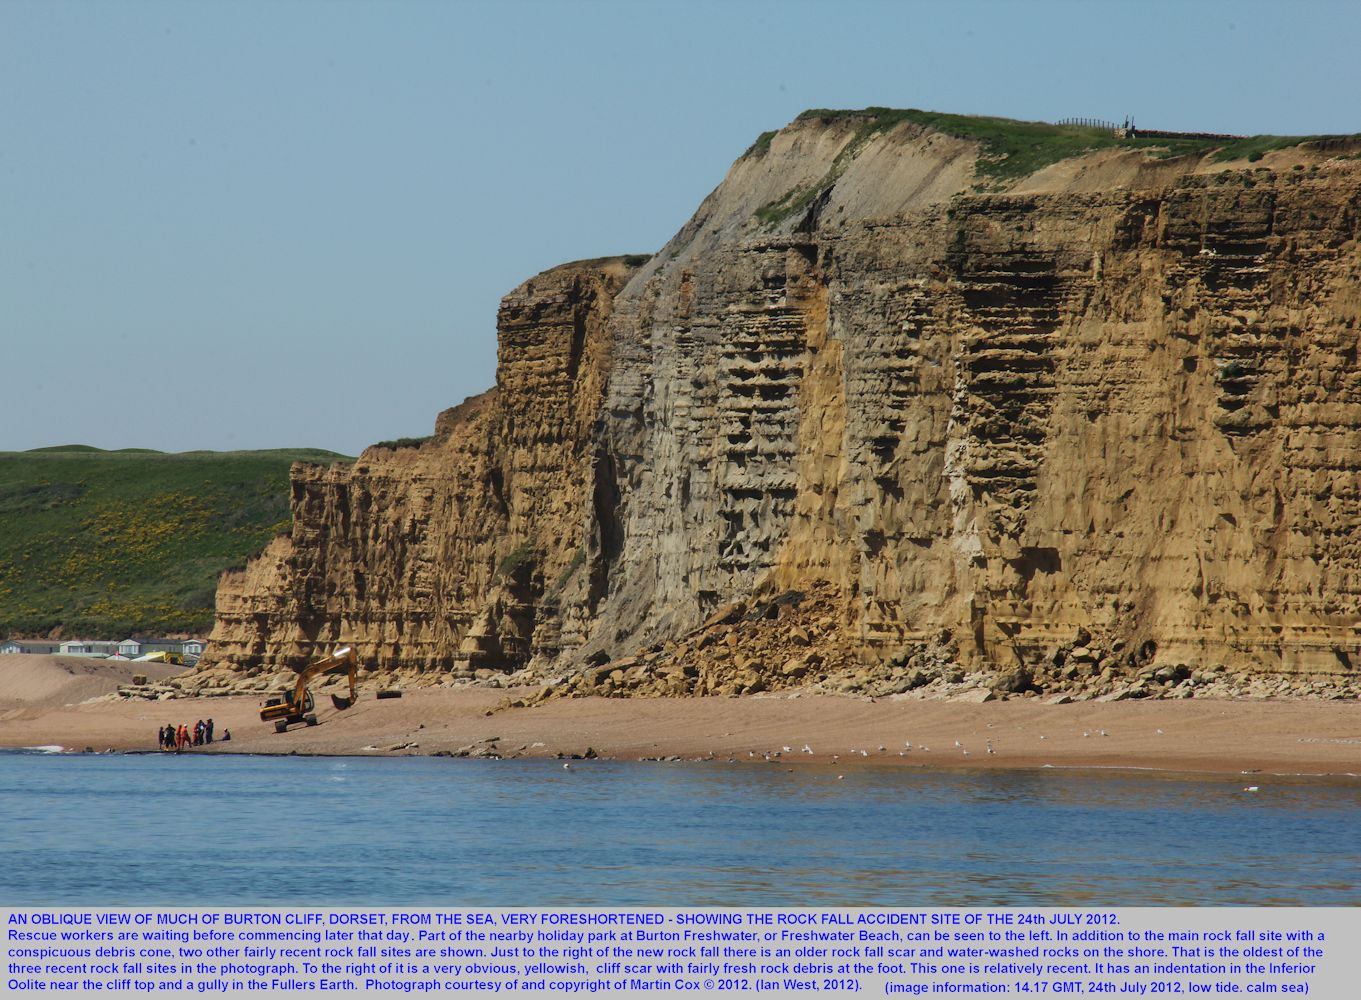 An oblique, foreshortened view of Burton Cliff , Burton Bradstock, Dorset, on the 24th July 2012, soon after a fatal accident caused by a rock fall, new